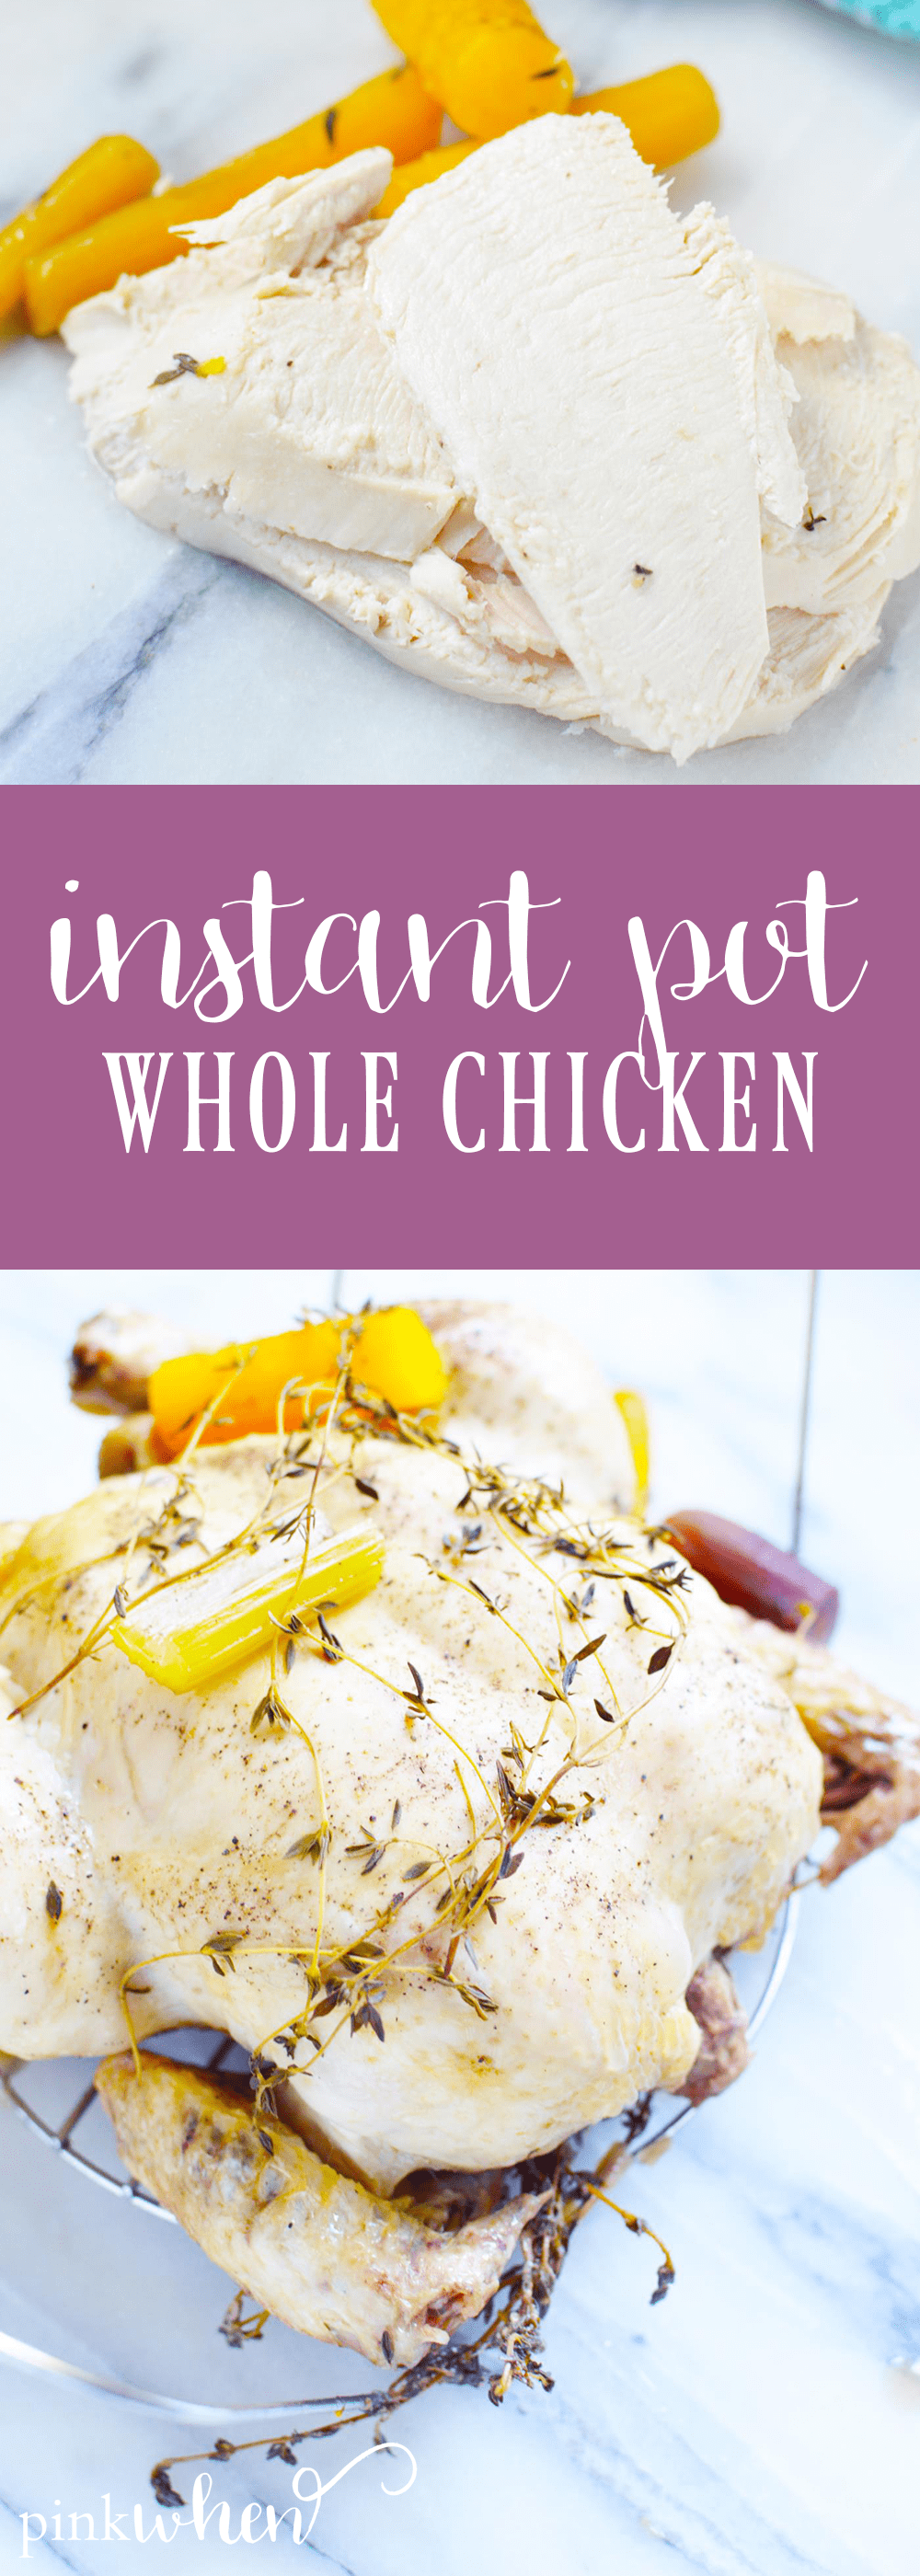 This instant pot chicken recipe is a newly loved staple in our house and makes dinner SO easy! This instant pot whole chicken recipe is flavorful, moist, and delicious. It's sure to be an easy chicken recipe you refer to again and again!